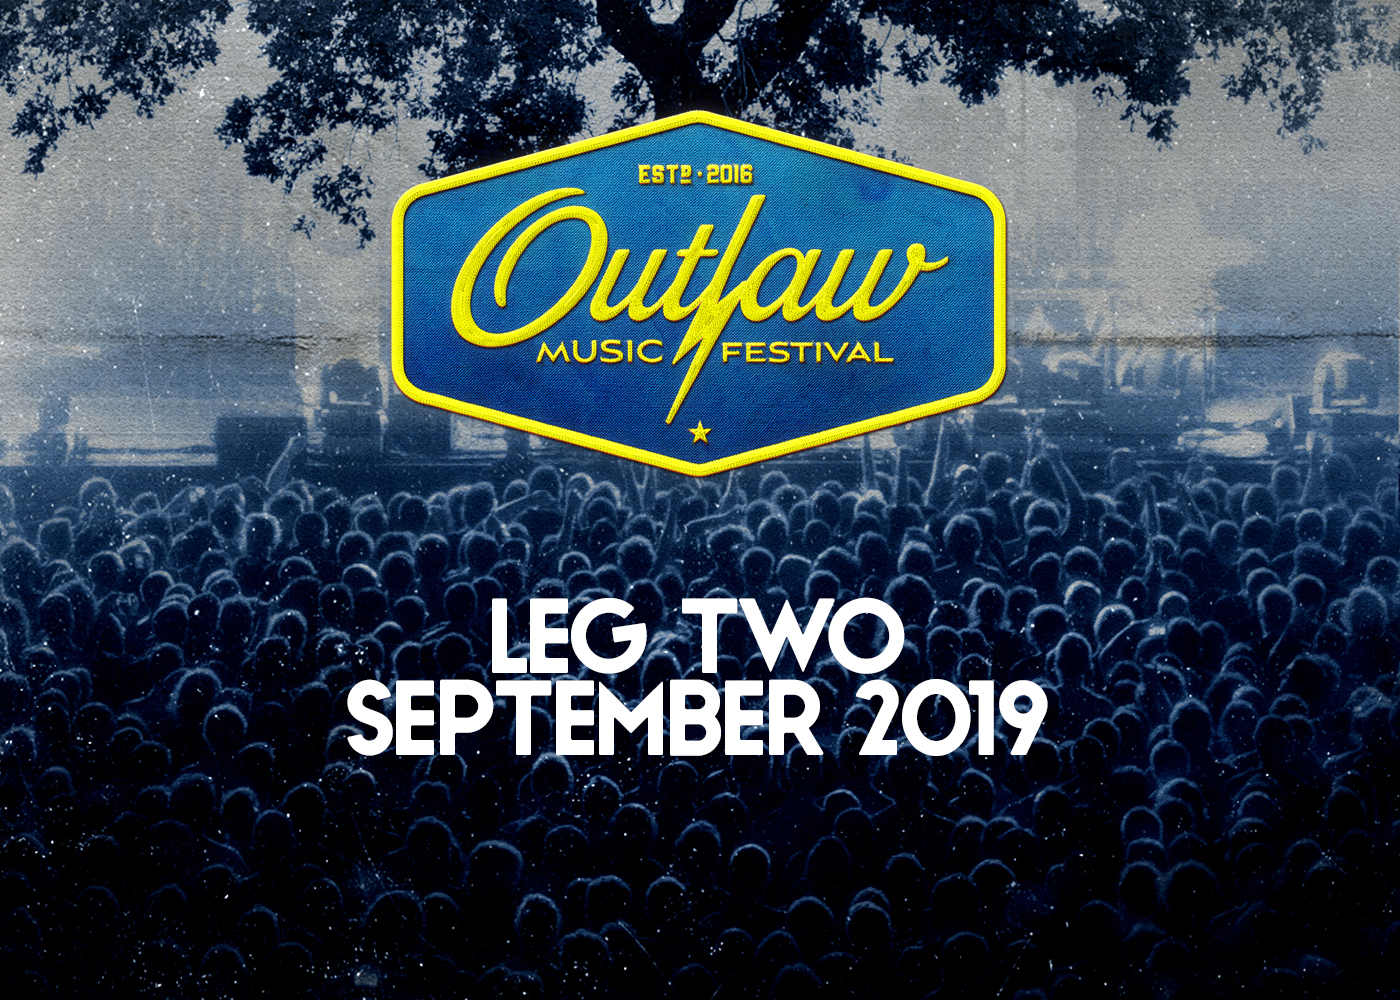 Outlaw Music Festival 2020 Milwaukee Second Leg of Outlaw Music Festival Tour 2019 Announced